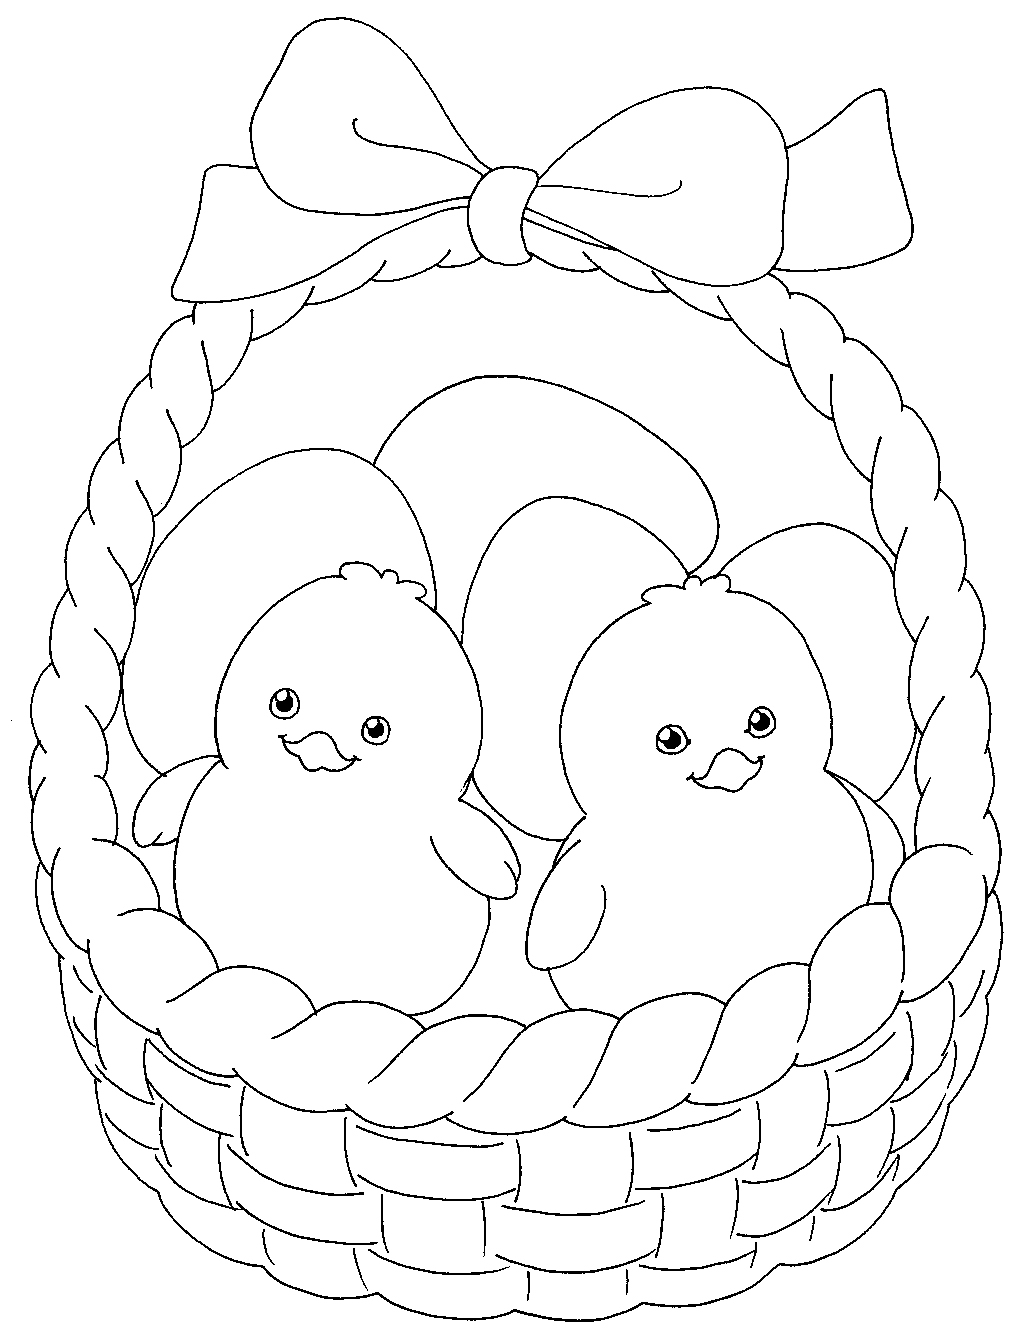 Colouring in pages activity village - Easter Colouring Cute Chicks In A Basket To Colour Download Image Easter Colouring Activity Village